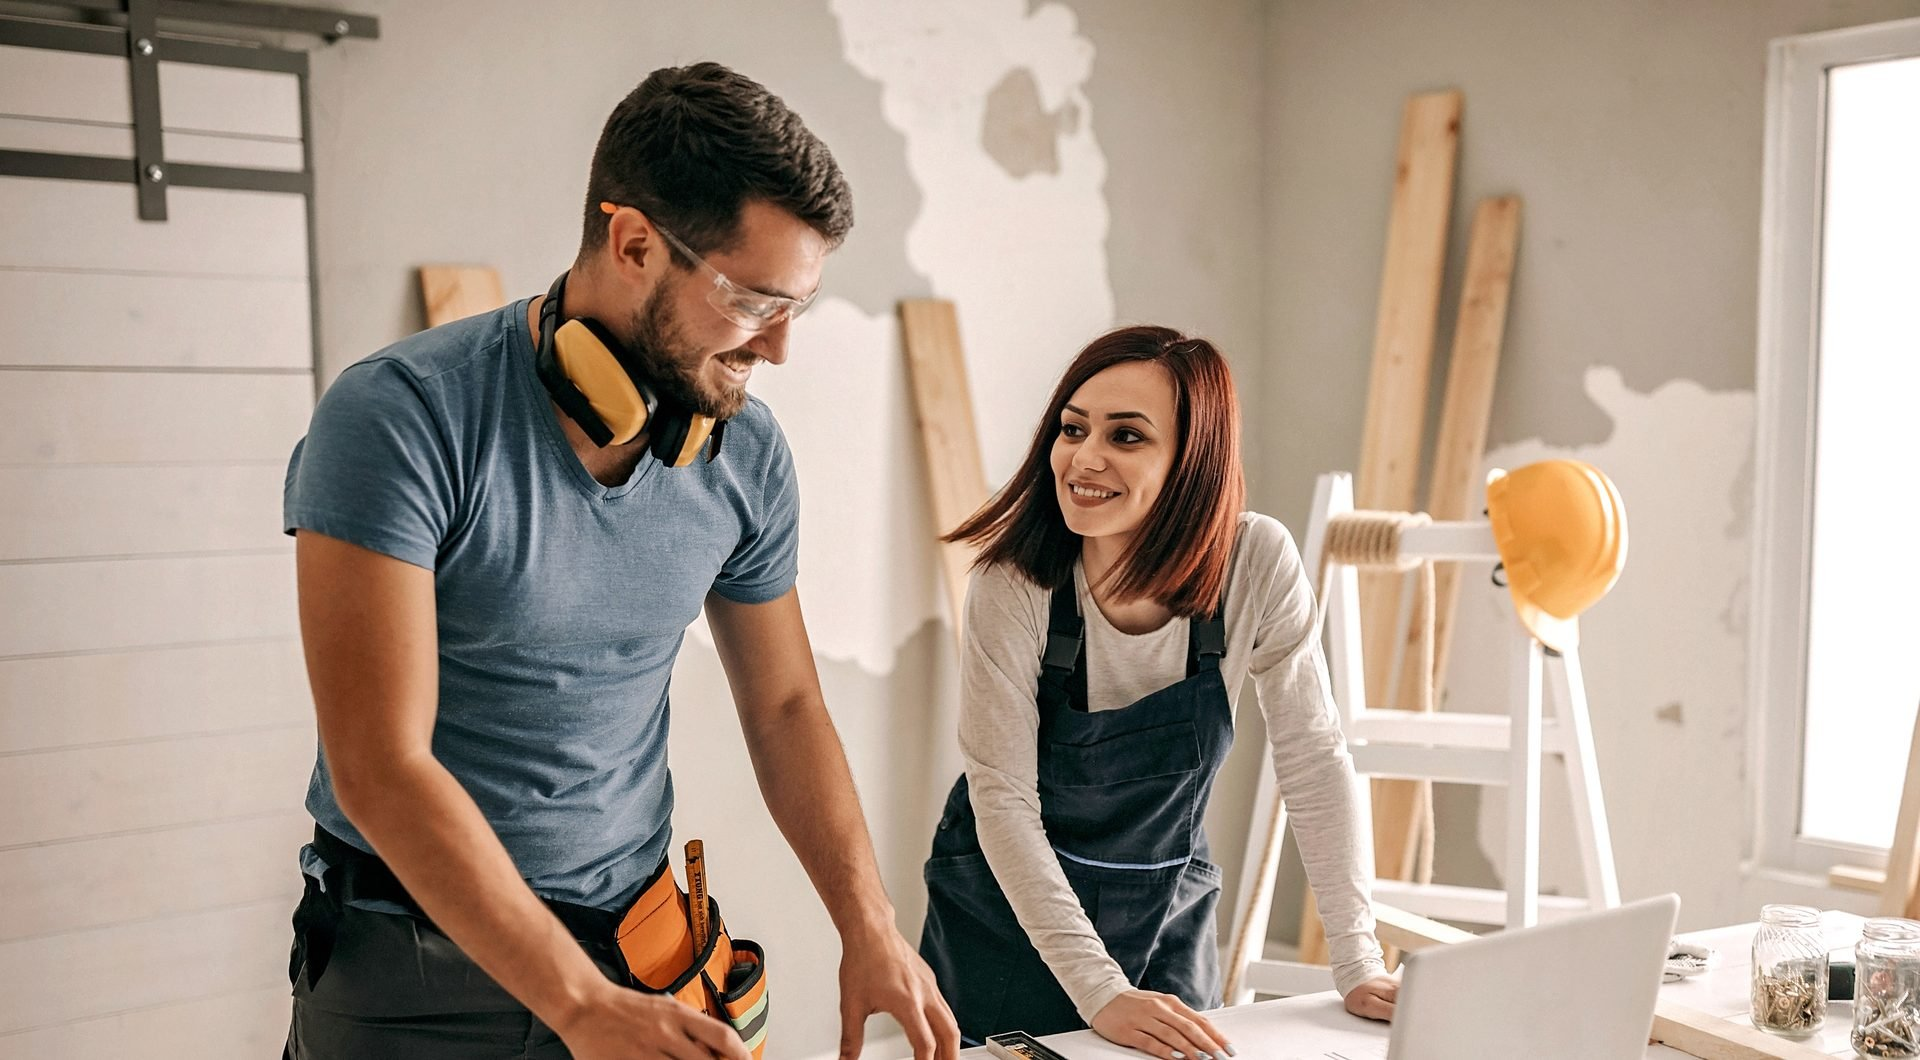 Personal Loan Calculator for Home Improvements